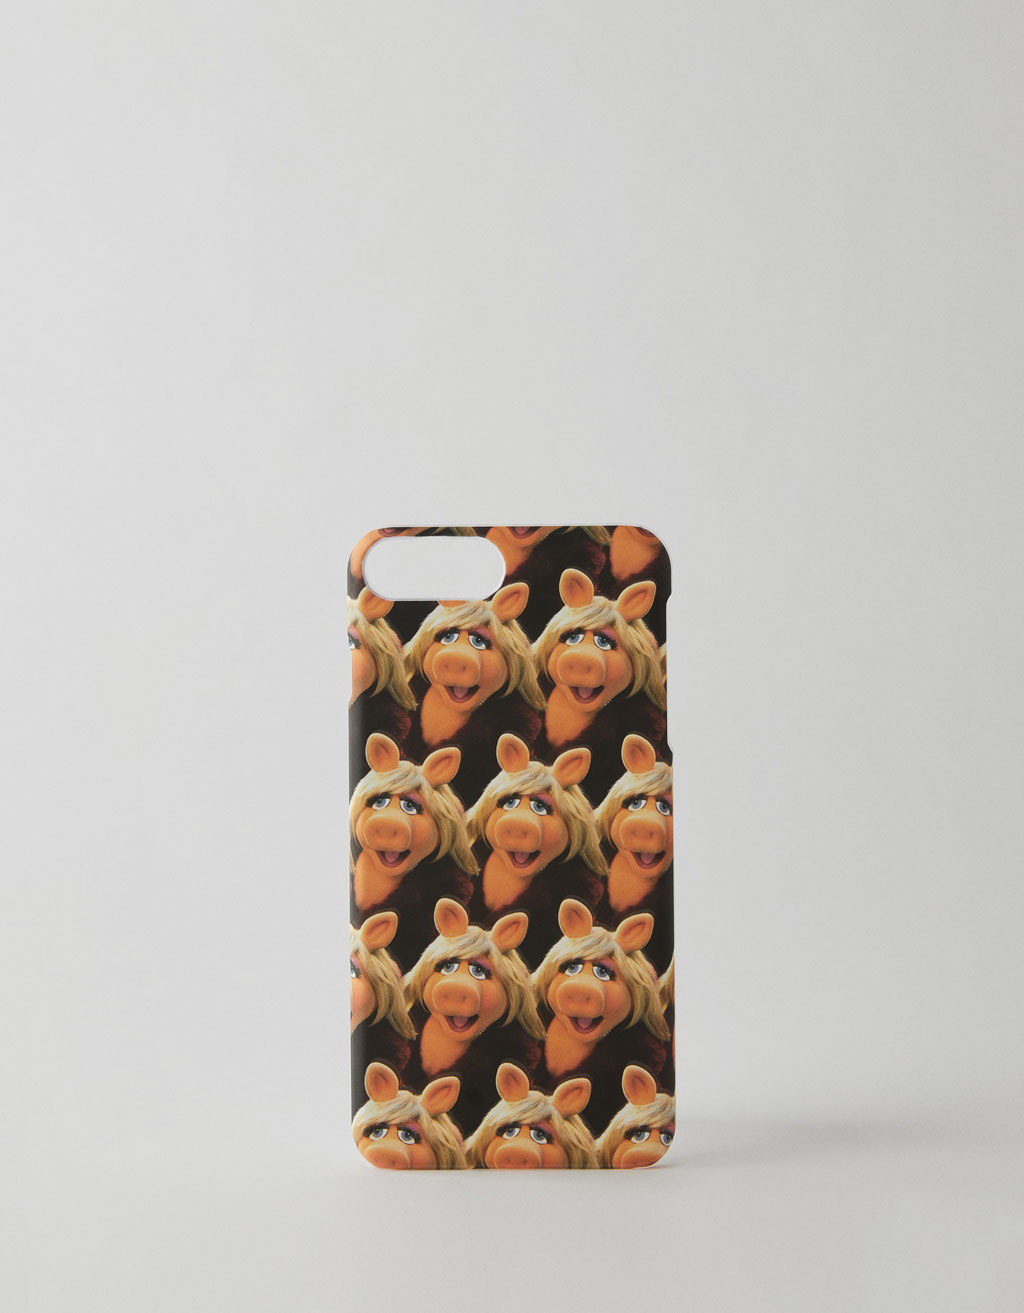 Muppets Miss Piggy iPhone 6 Plus / 7 Plus / 8 Plus case